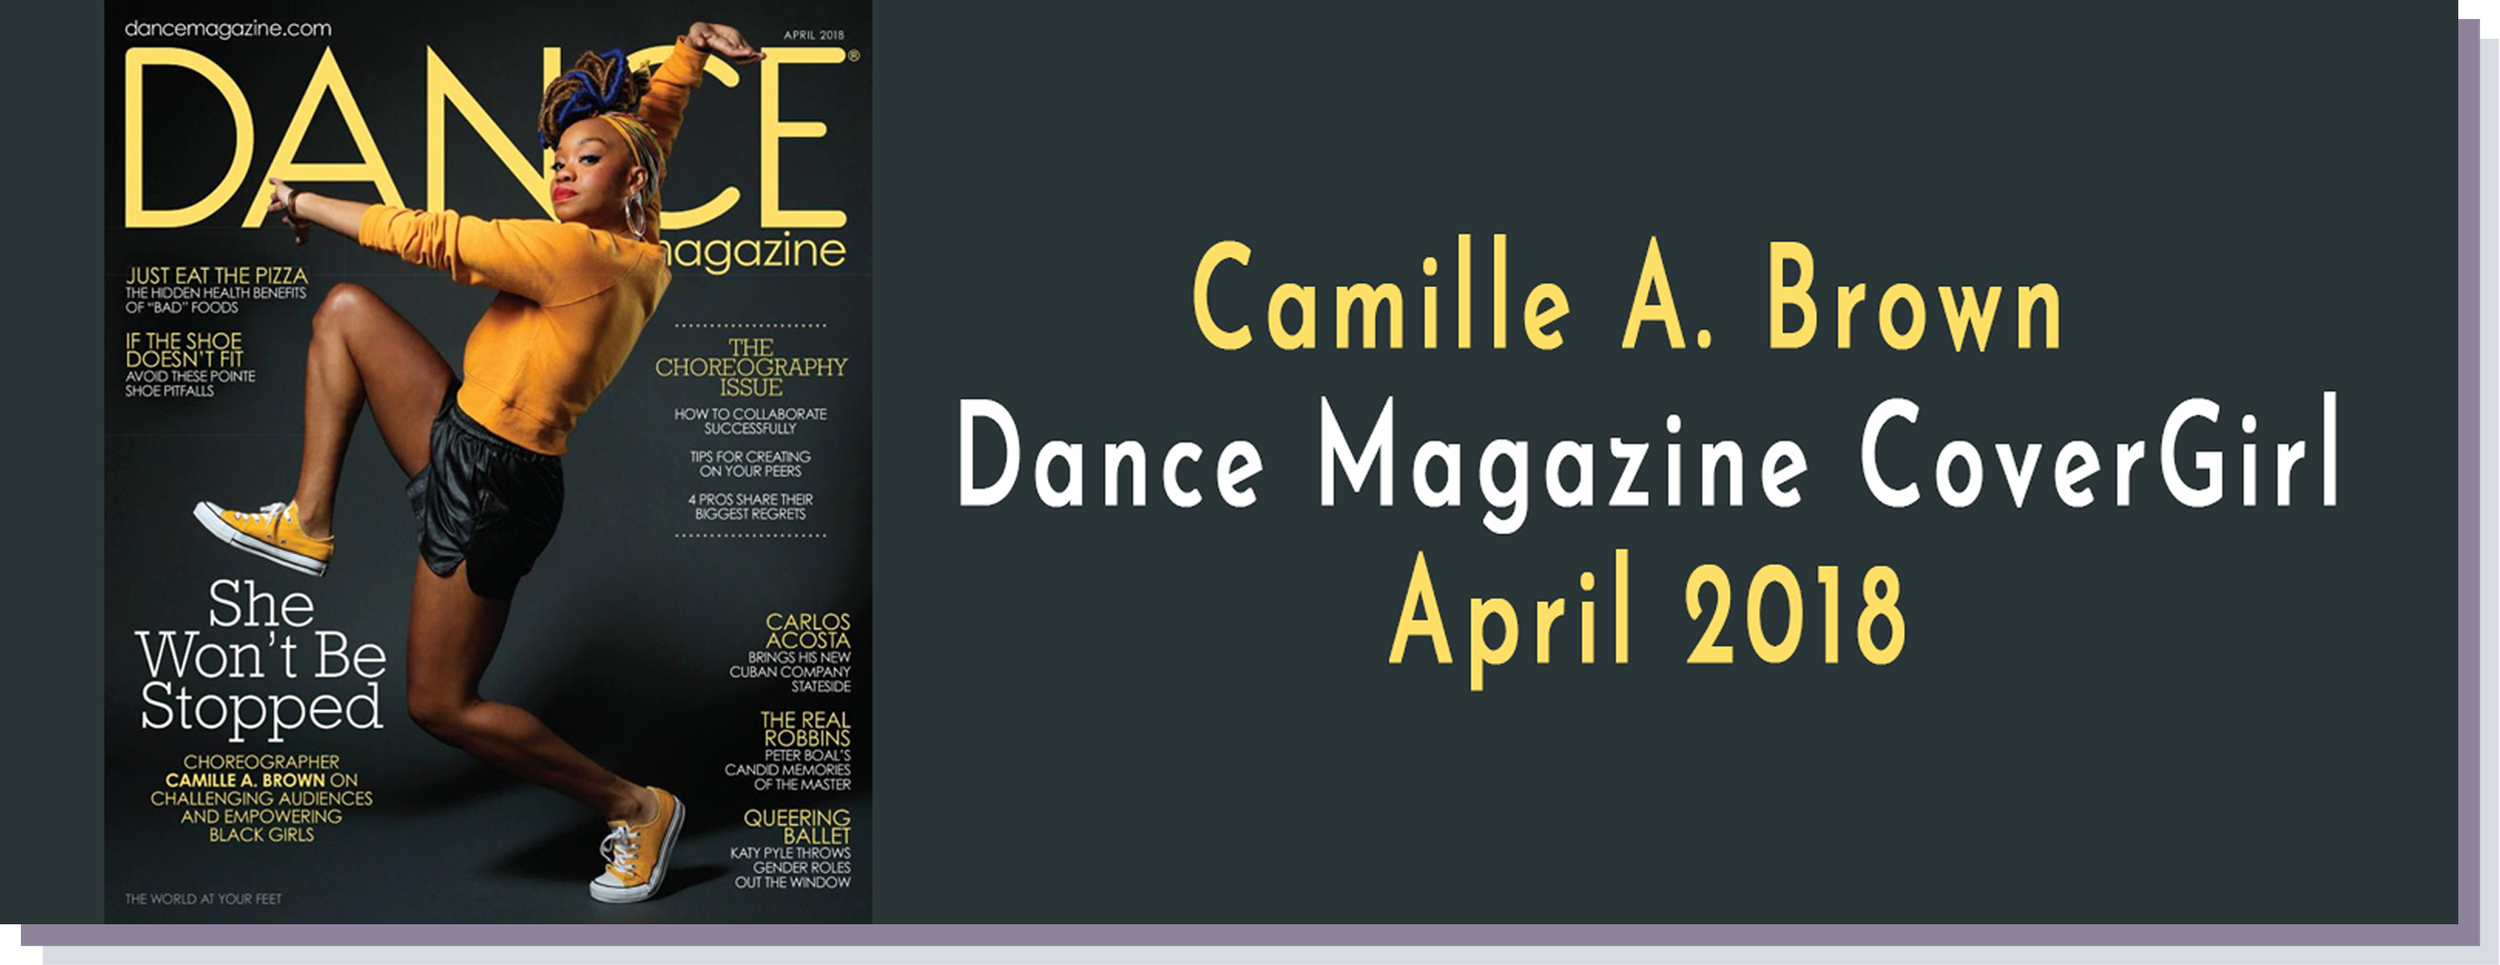 DanceMagBanner.png